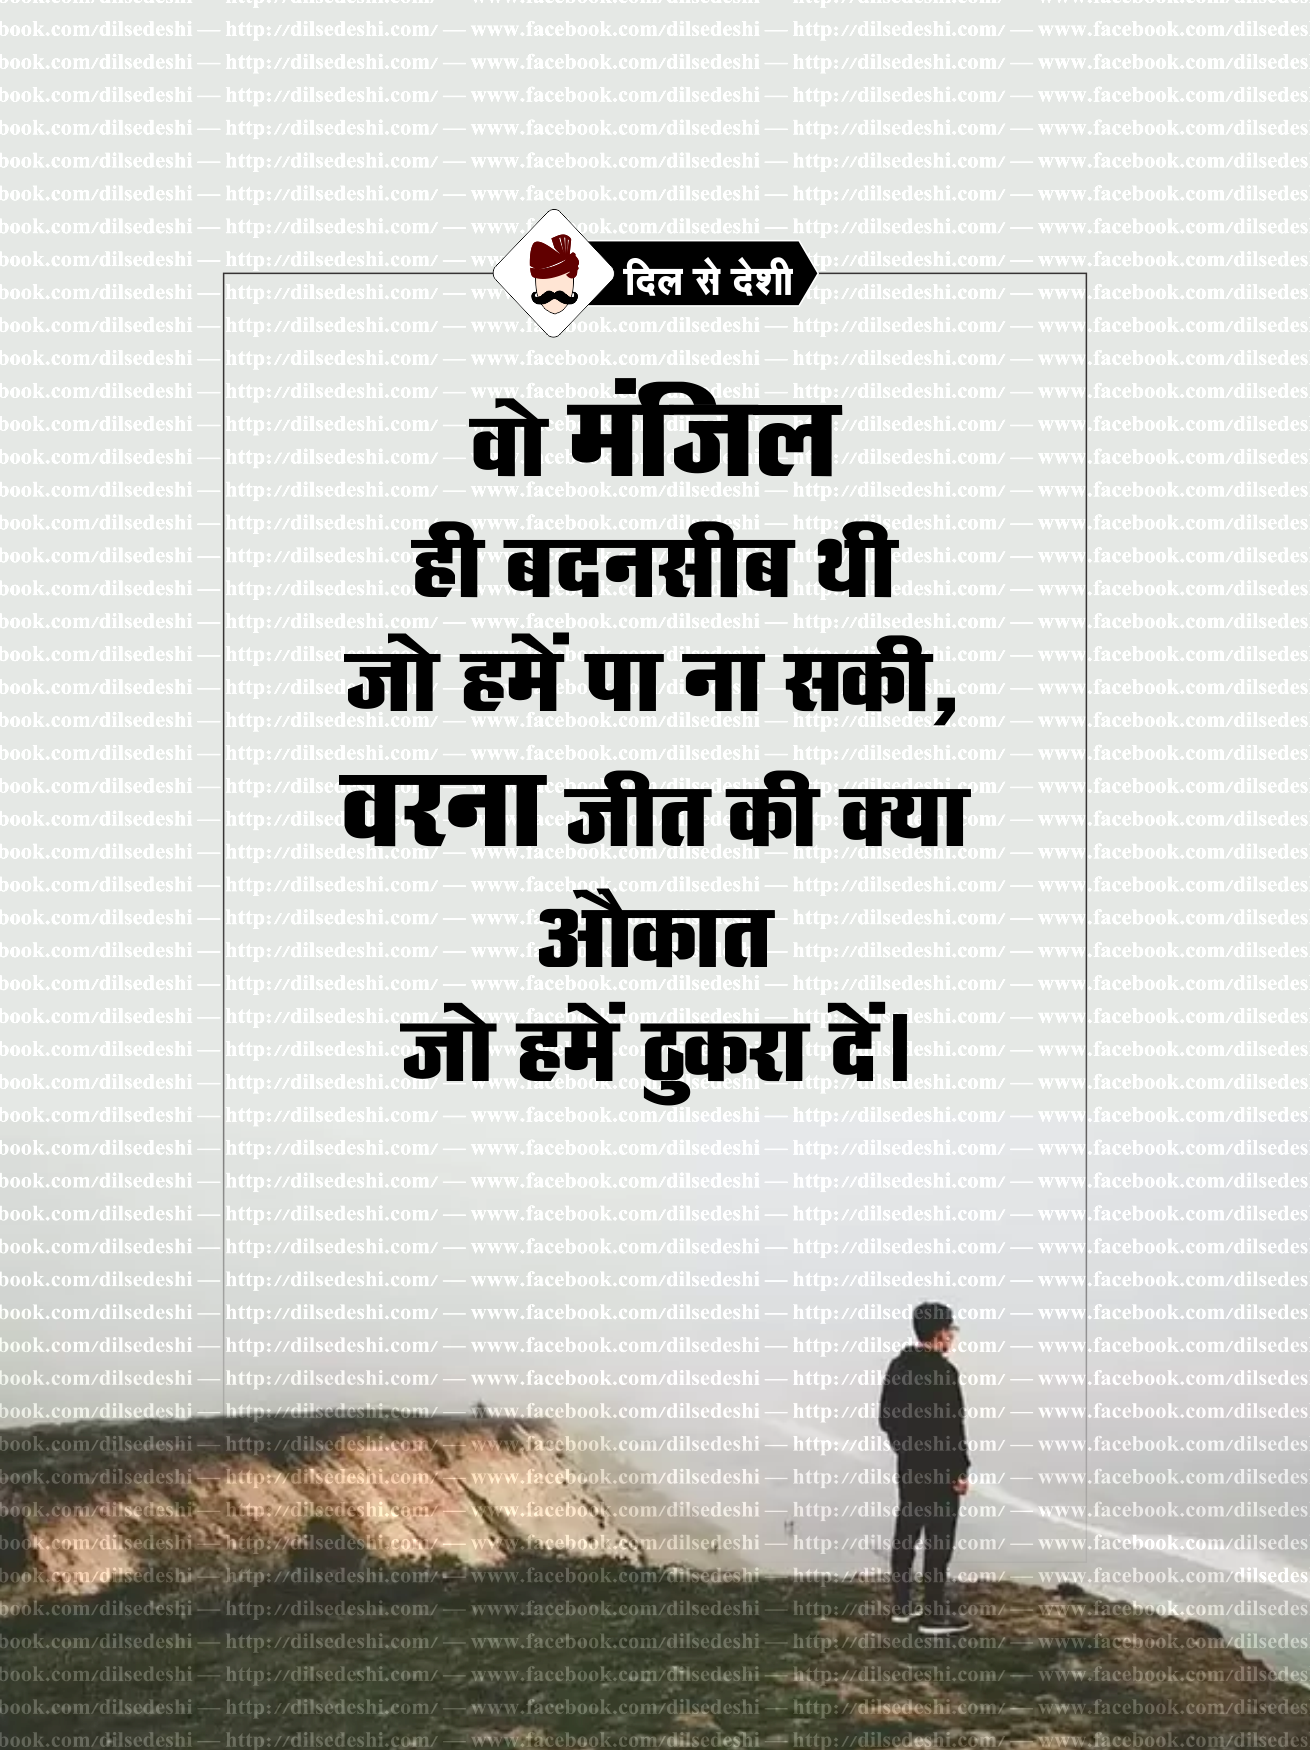 Dilsedeshi #hindi #suvichar #quotes #hindiquotes #thought